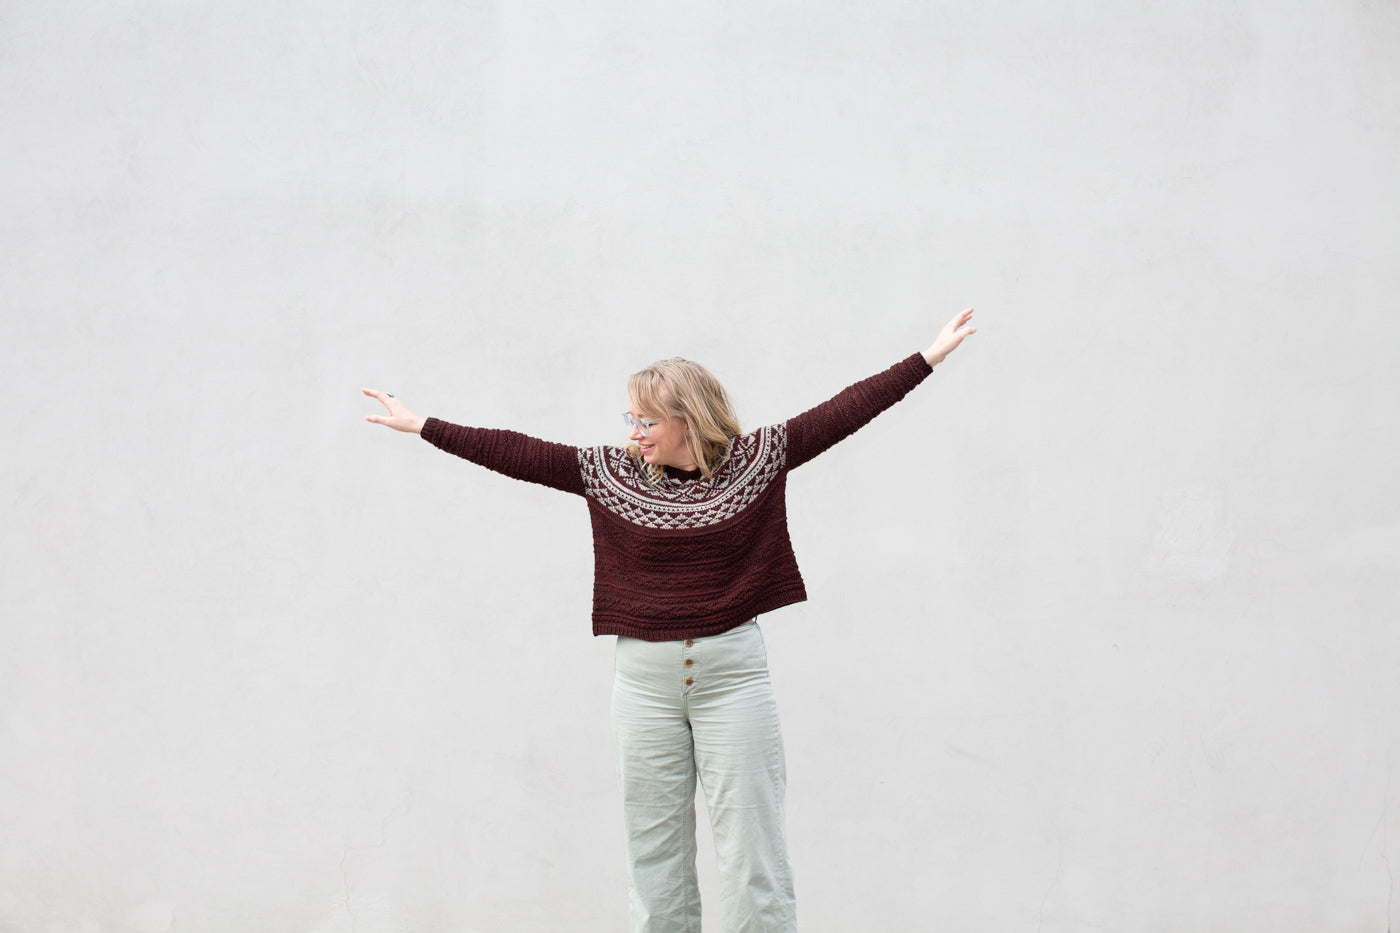 Amber standing in front of a white wall with her arms out, showing her new knitted sweater.  The sweater colors are burgundy and mint, Amber is wearing light green pants.